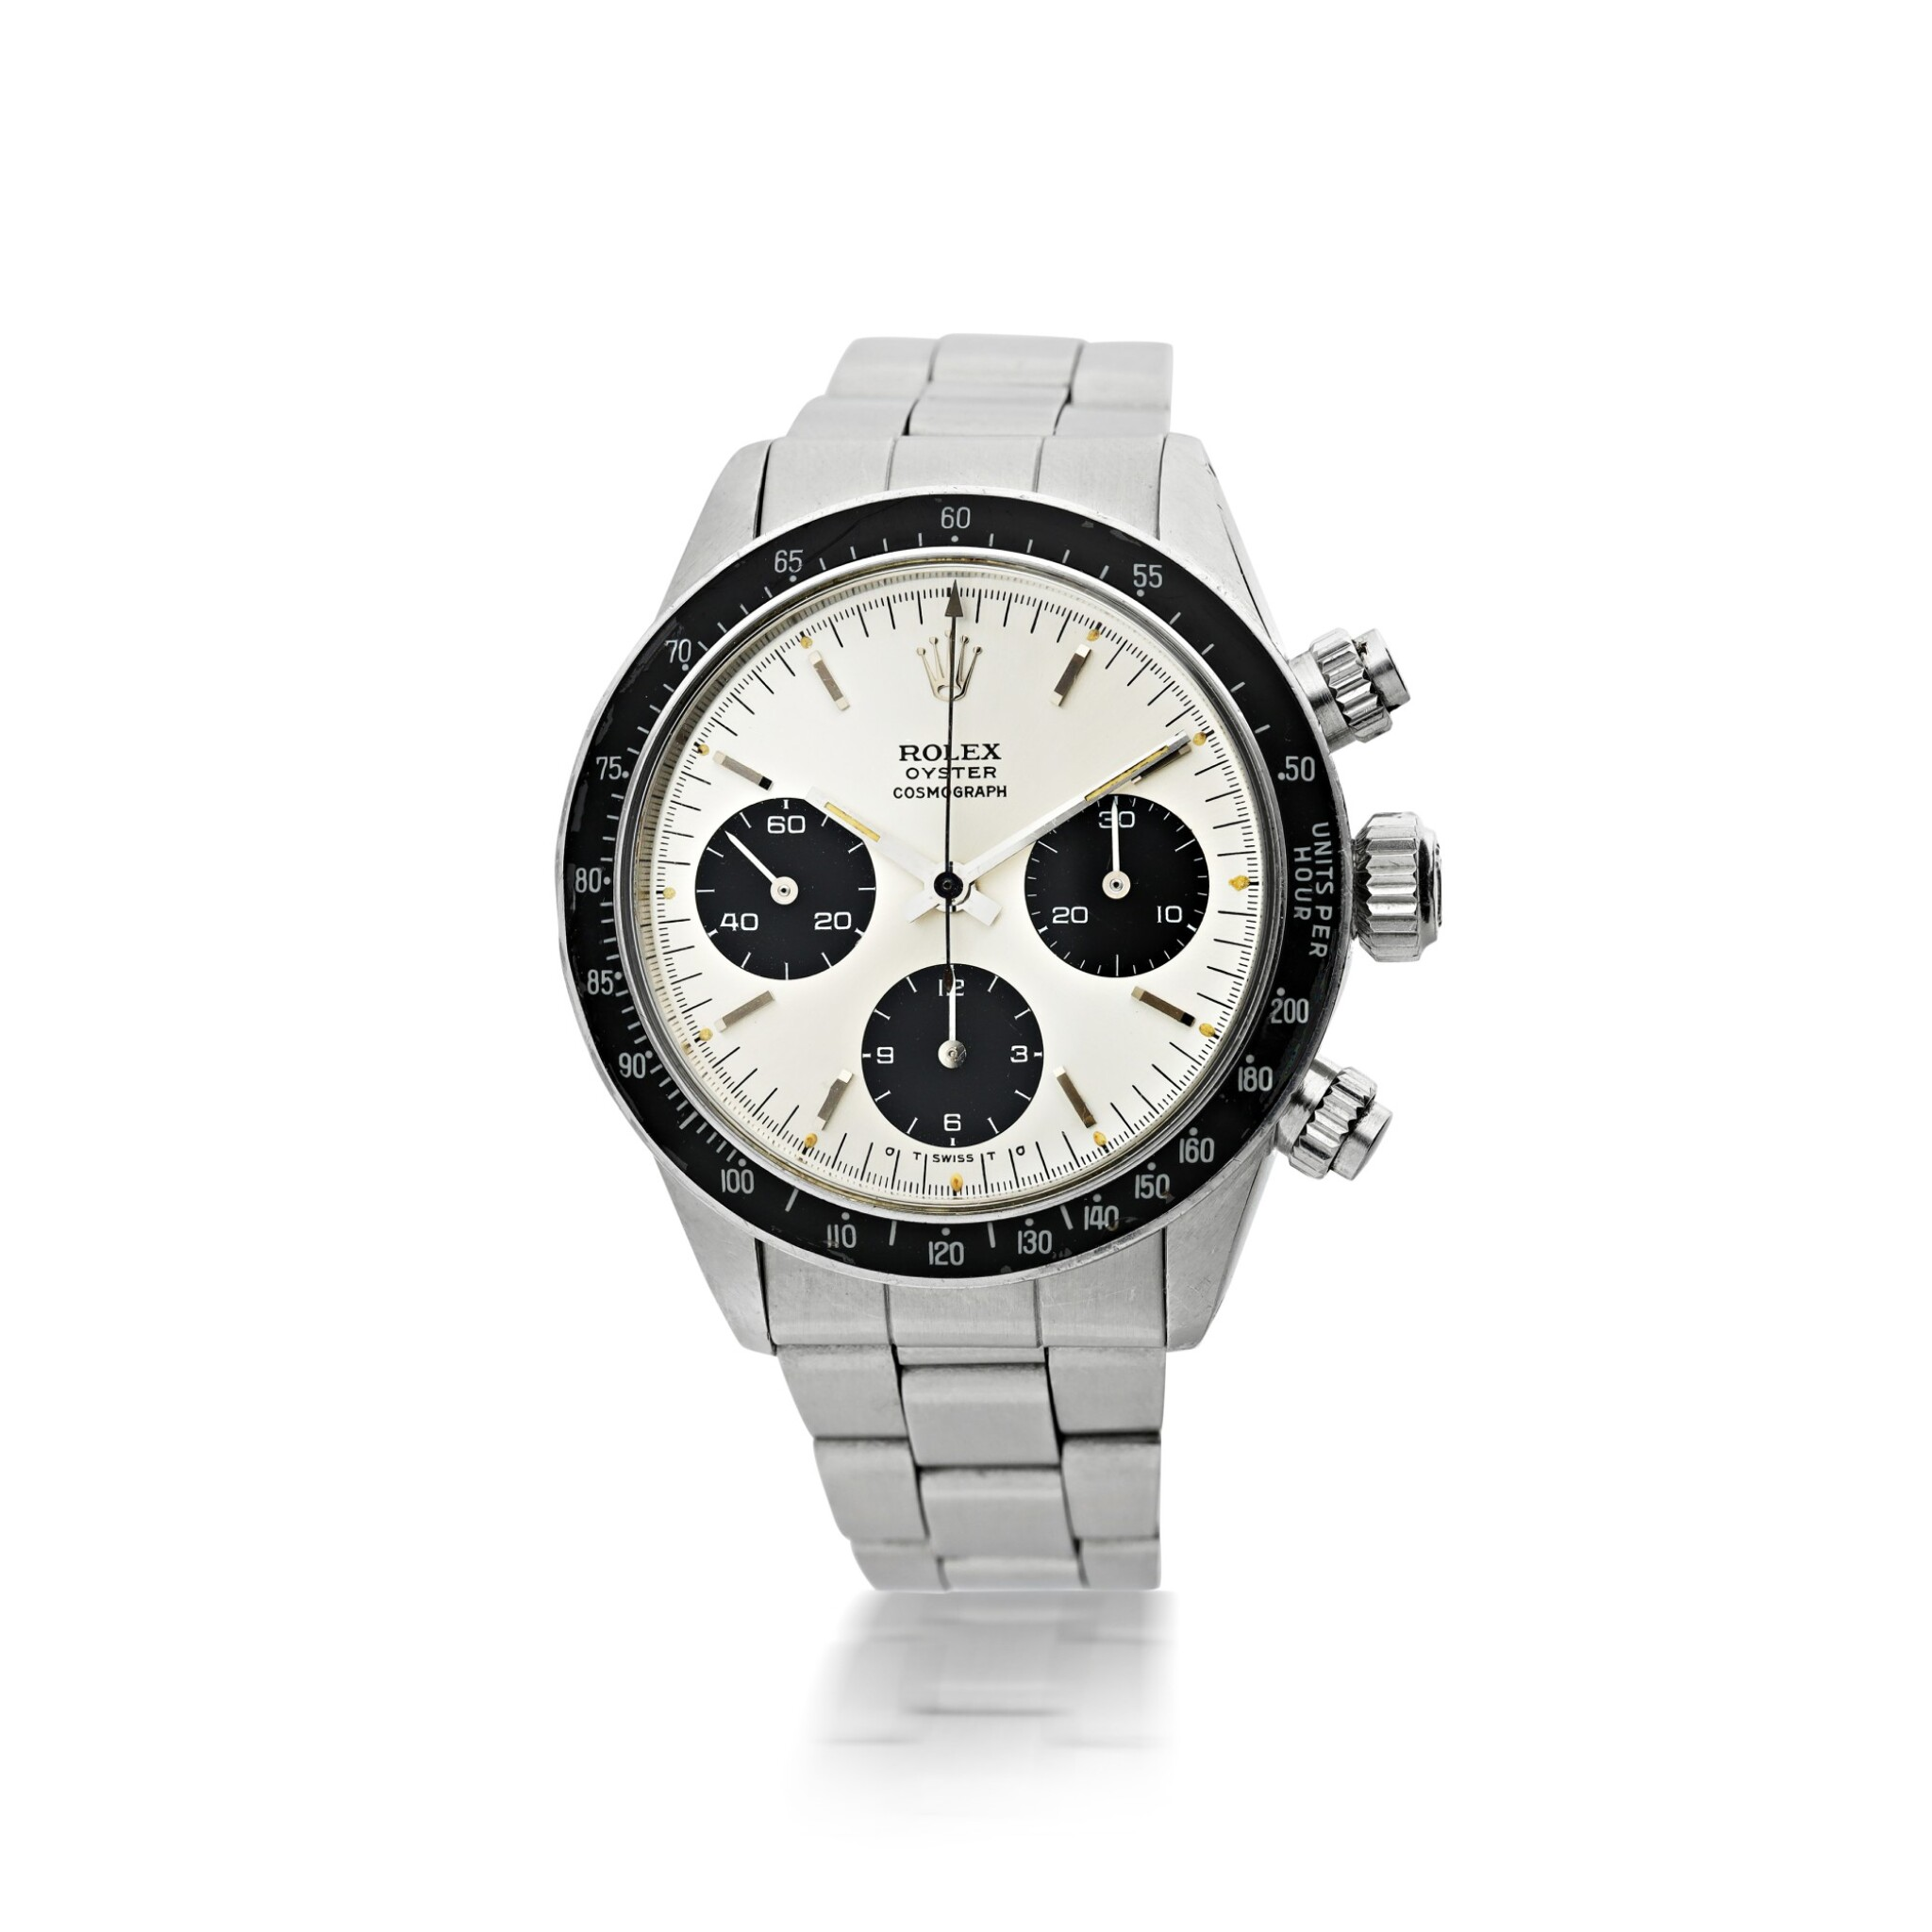 View full screen - View 1 of Lot 3. ROLEX | REFERENCE 6263 DAYTONA 'SIGMA DIAL'   A STAINLESS STEEL CHRONOGRAPH WRISTWATCH WITH BRACELET, CIRCA 1974.